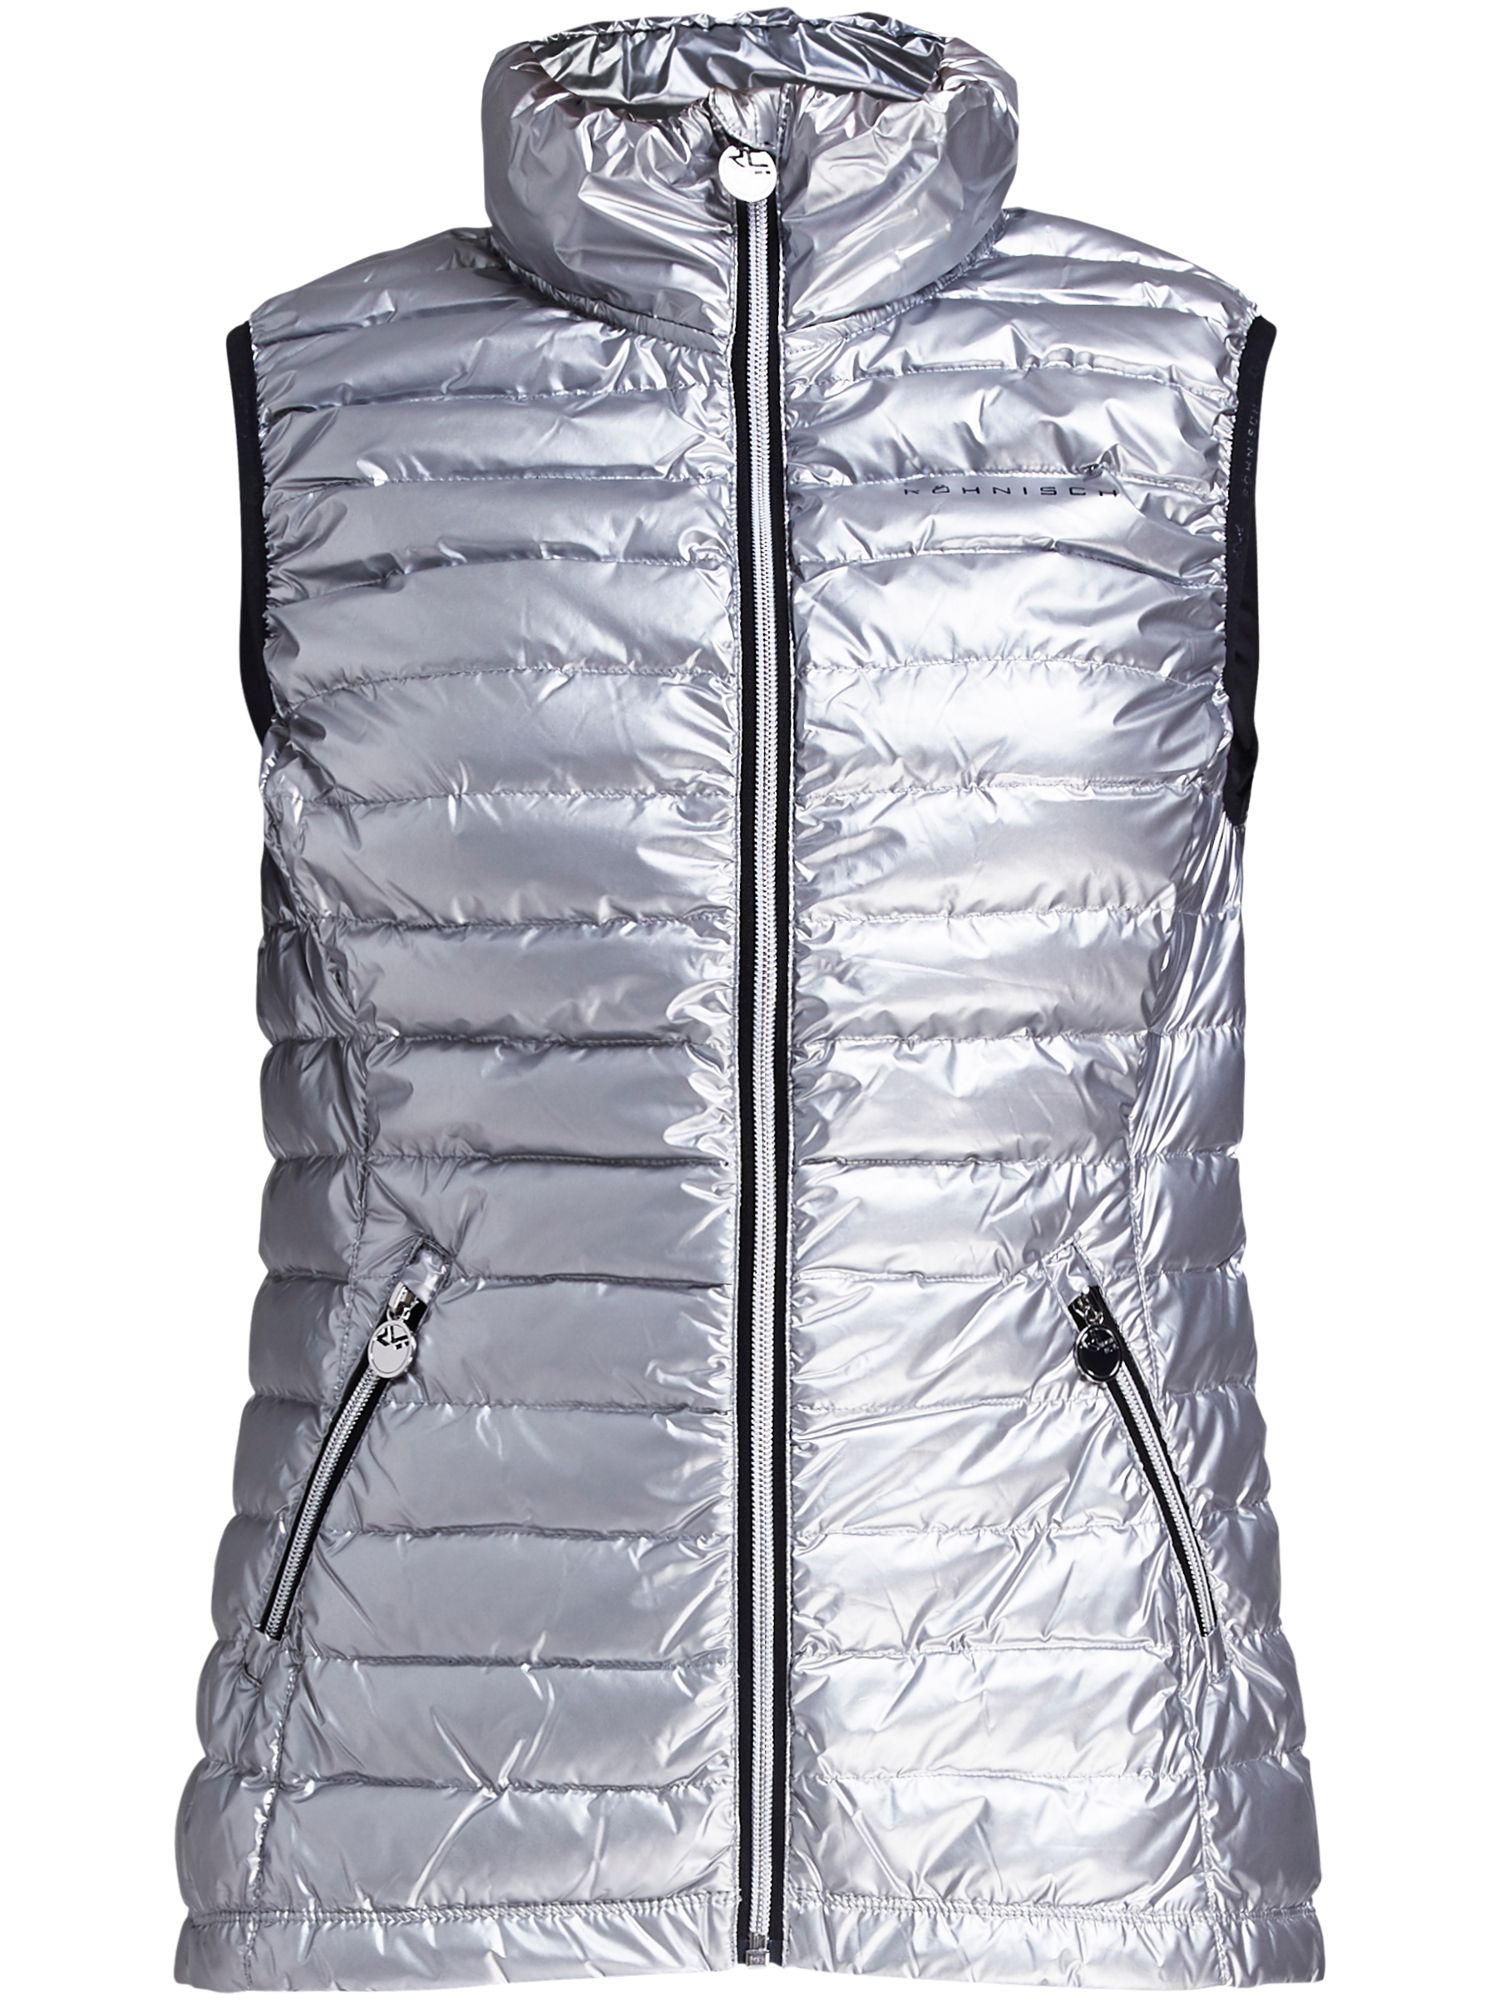 Rohnisch Light Down Gilet, Silver Silverlic